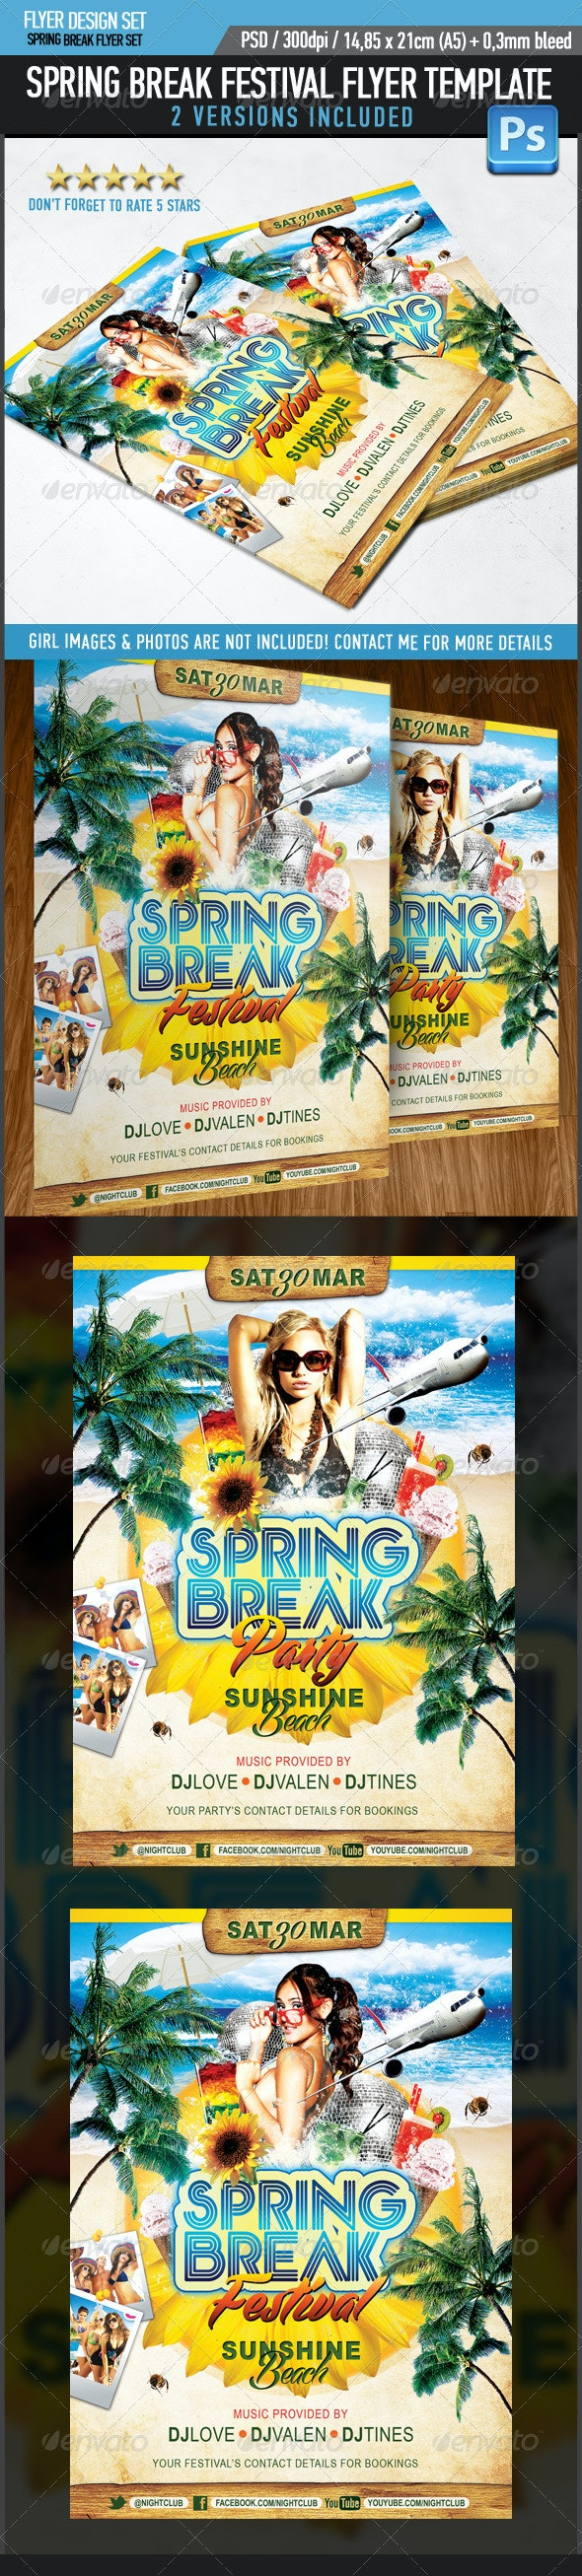 Spring Break Festival Party Flyer Template - Events Flyers